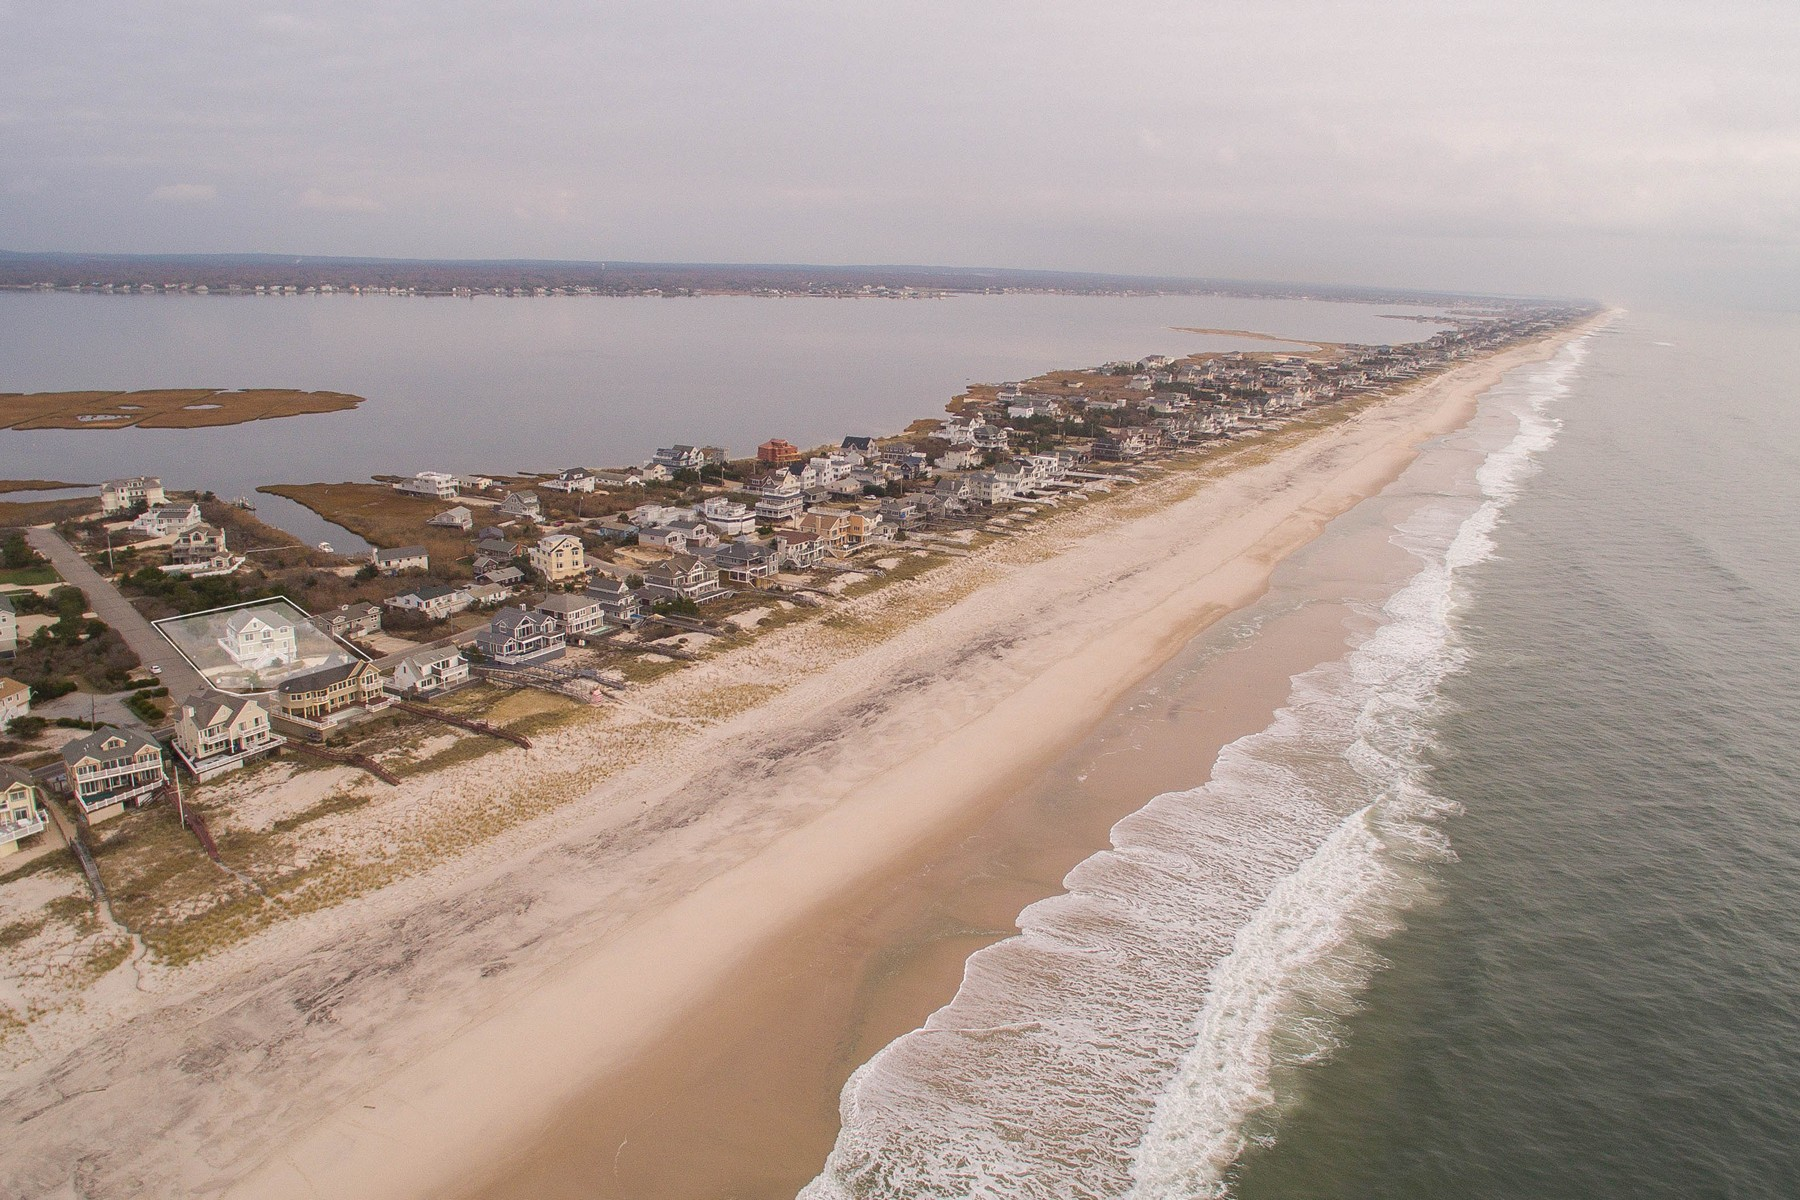 Single Family Home for Active at Westhampton Bch 902 Dune Rd Westhampton Beach, New York 11978 United States